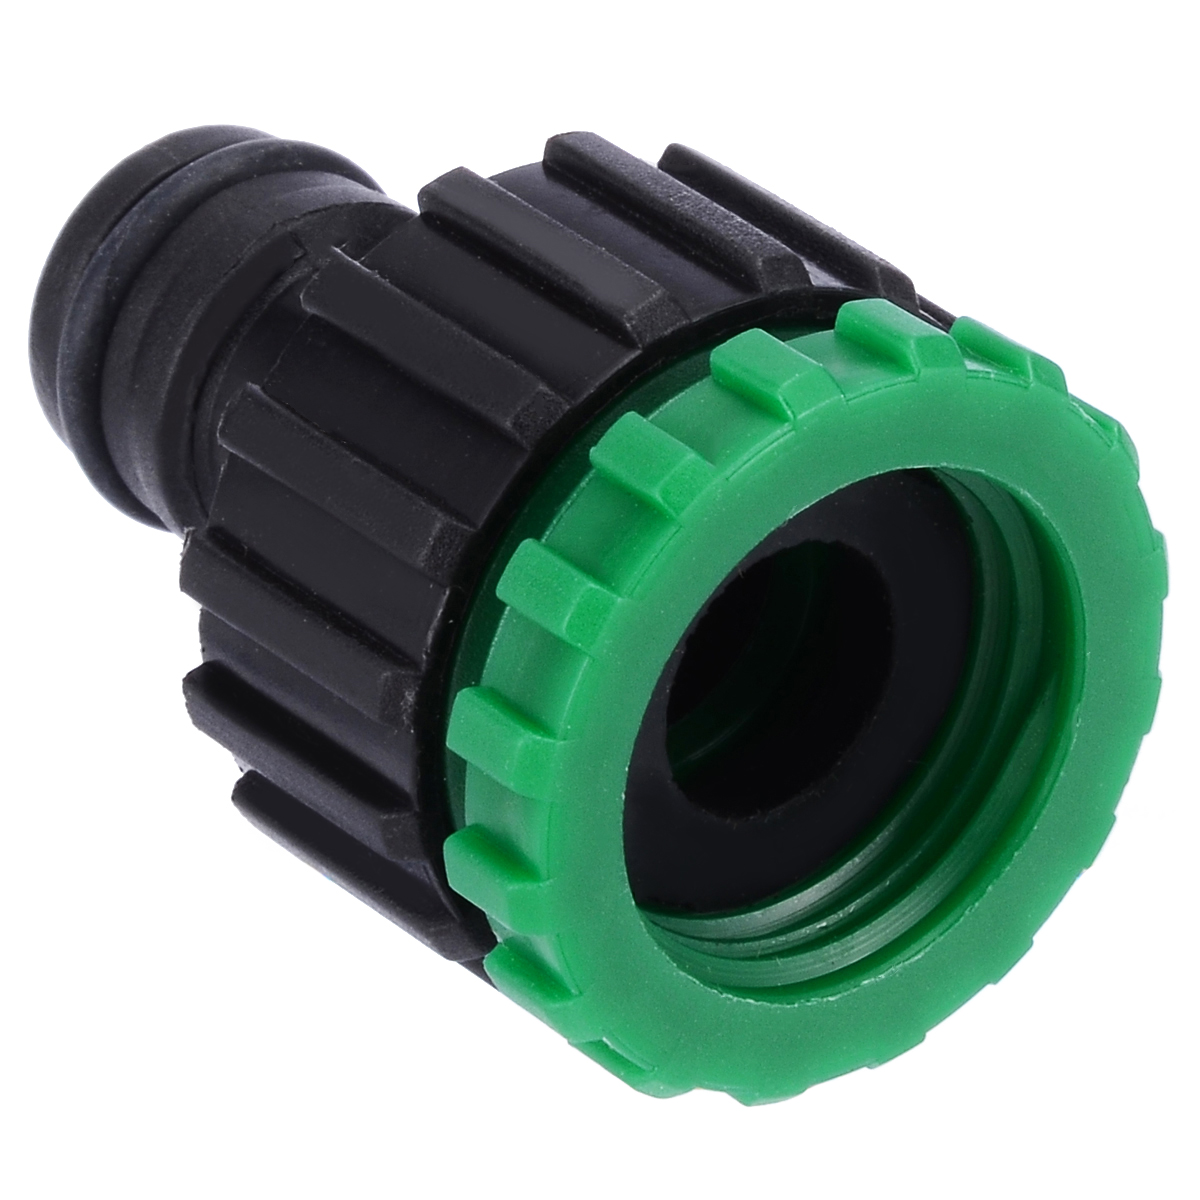 "1/2 3/4""  Fast Coupling Adapter For Irrigation Garden Tap Hose Pipe Connector For Pressure Washers Garden Tool"